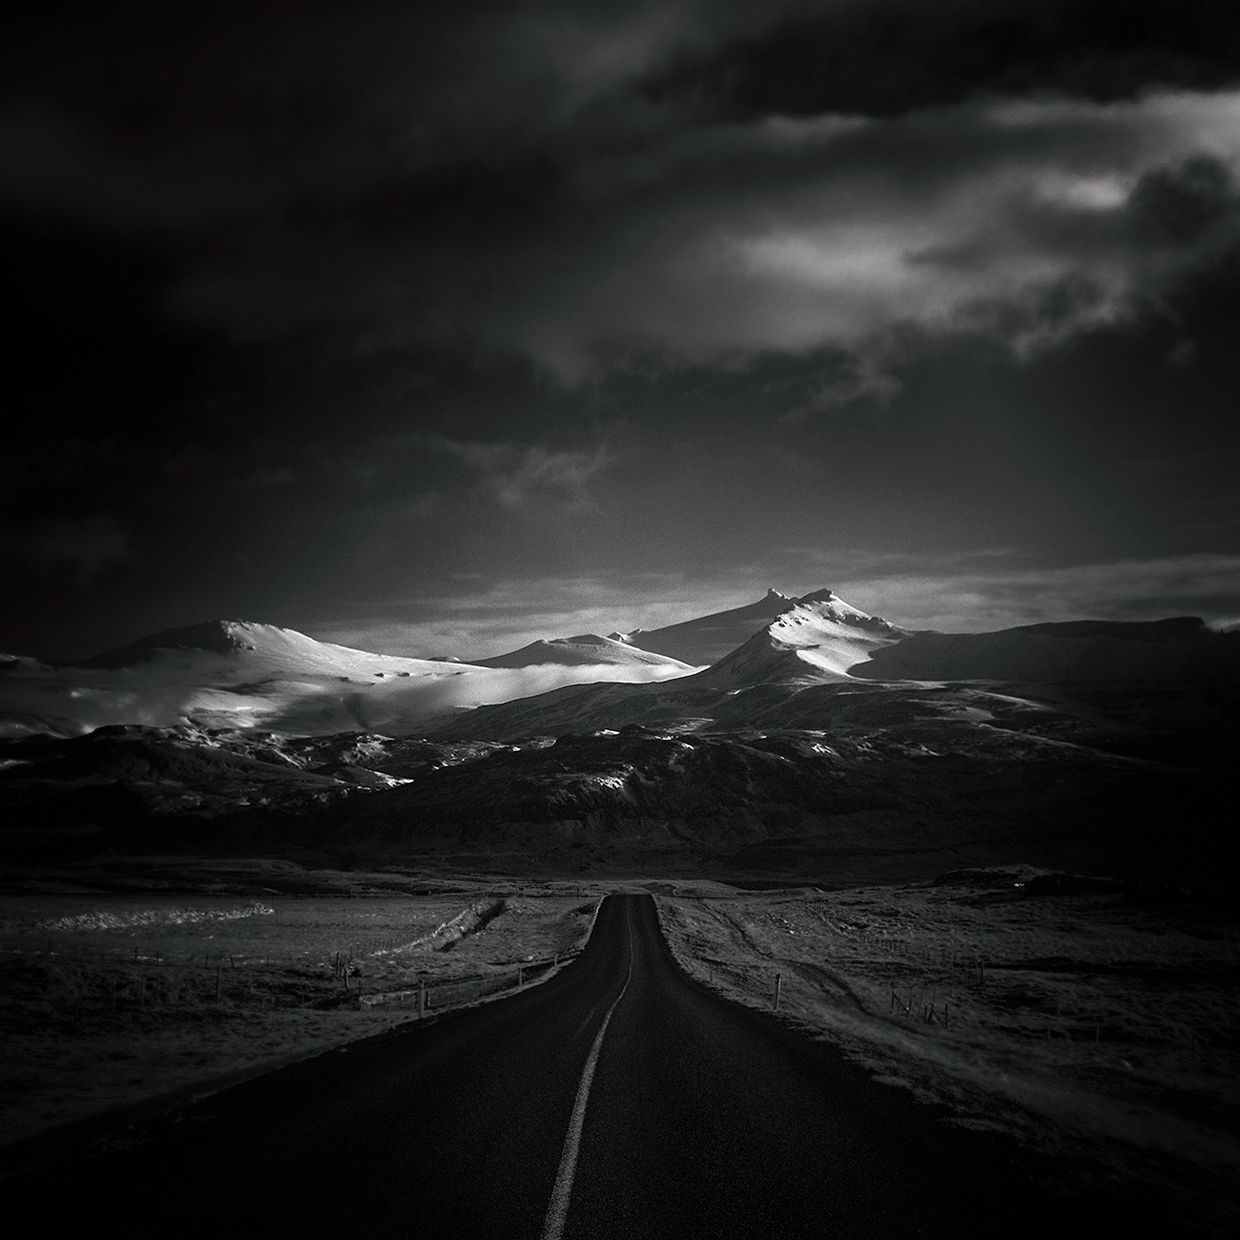 Roads / Andy Lee (2)